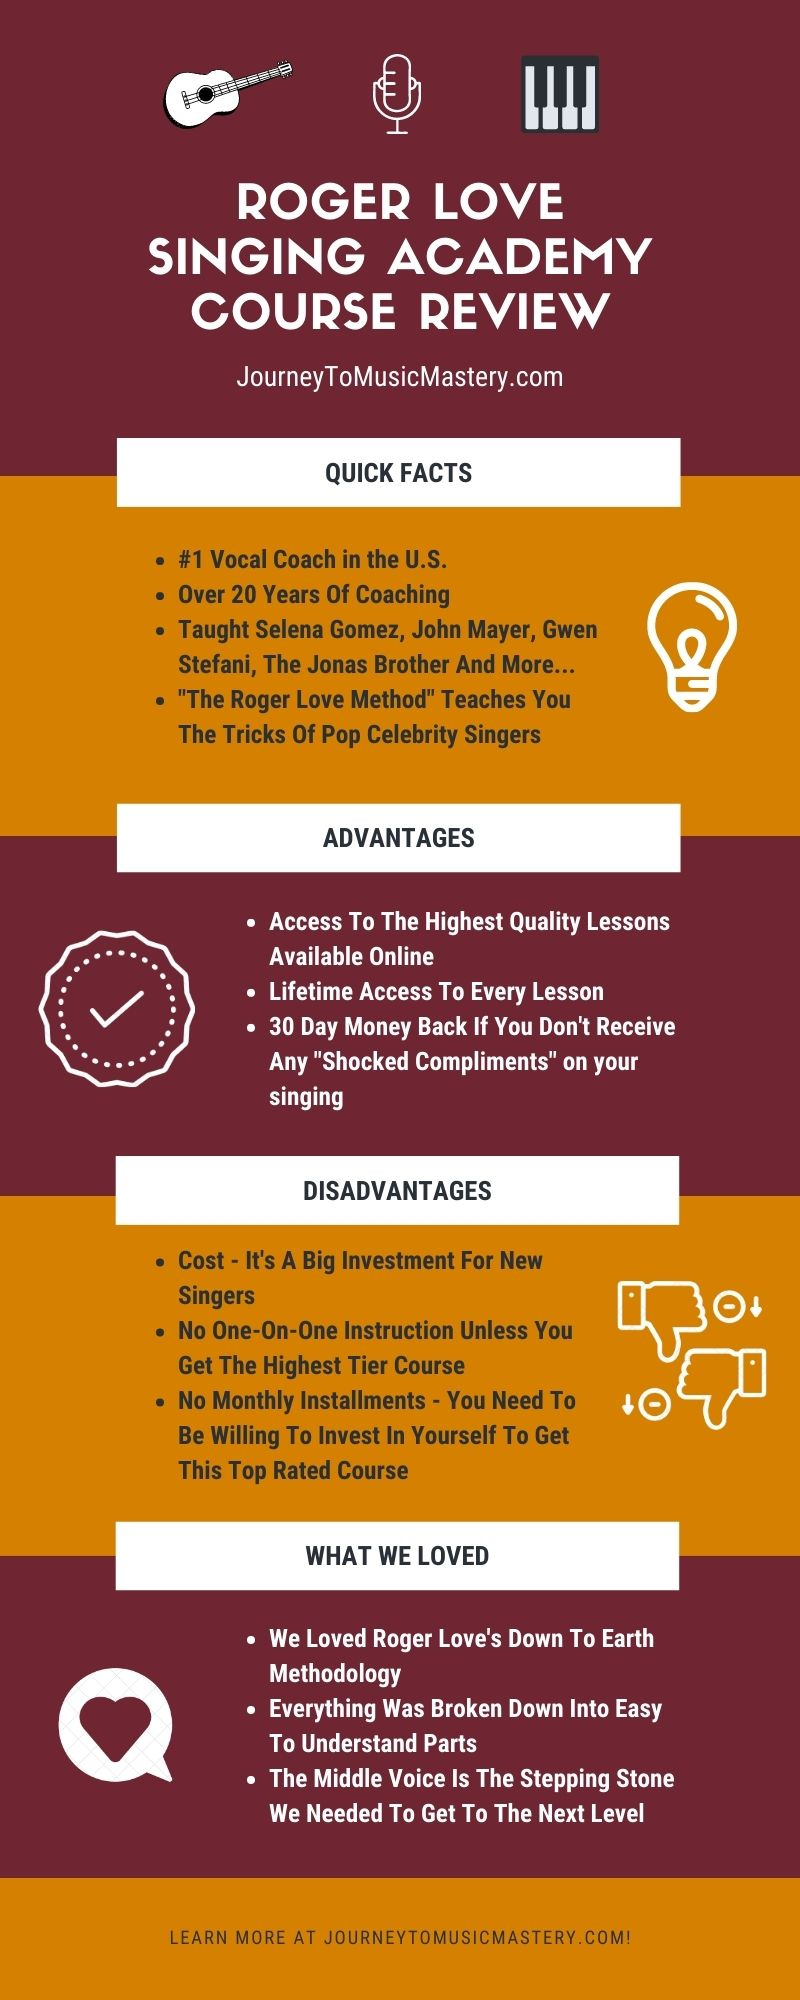 Roger Love Singing Academy Review Infographic